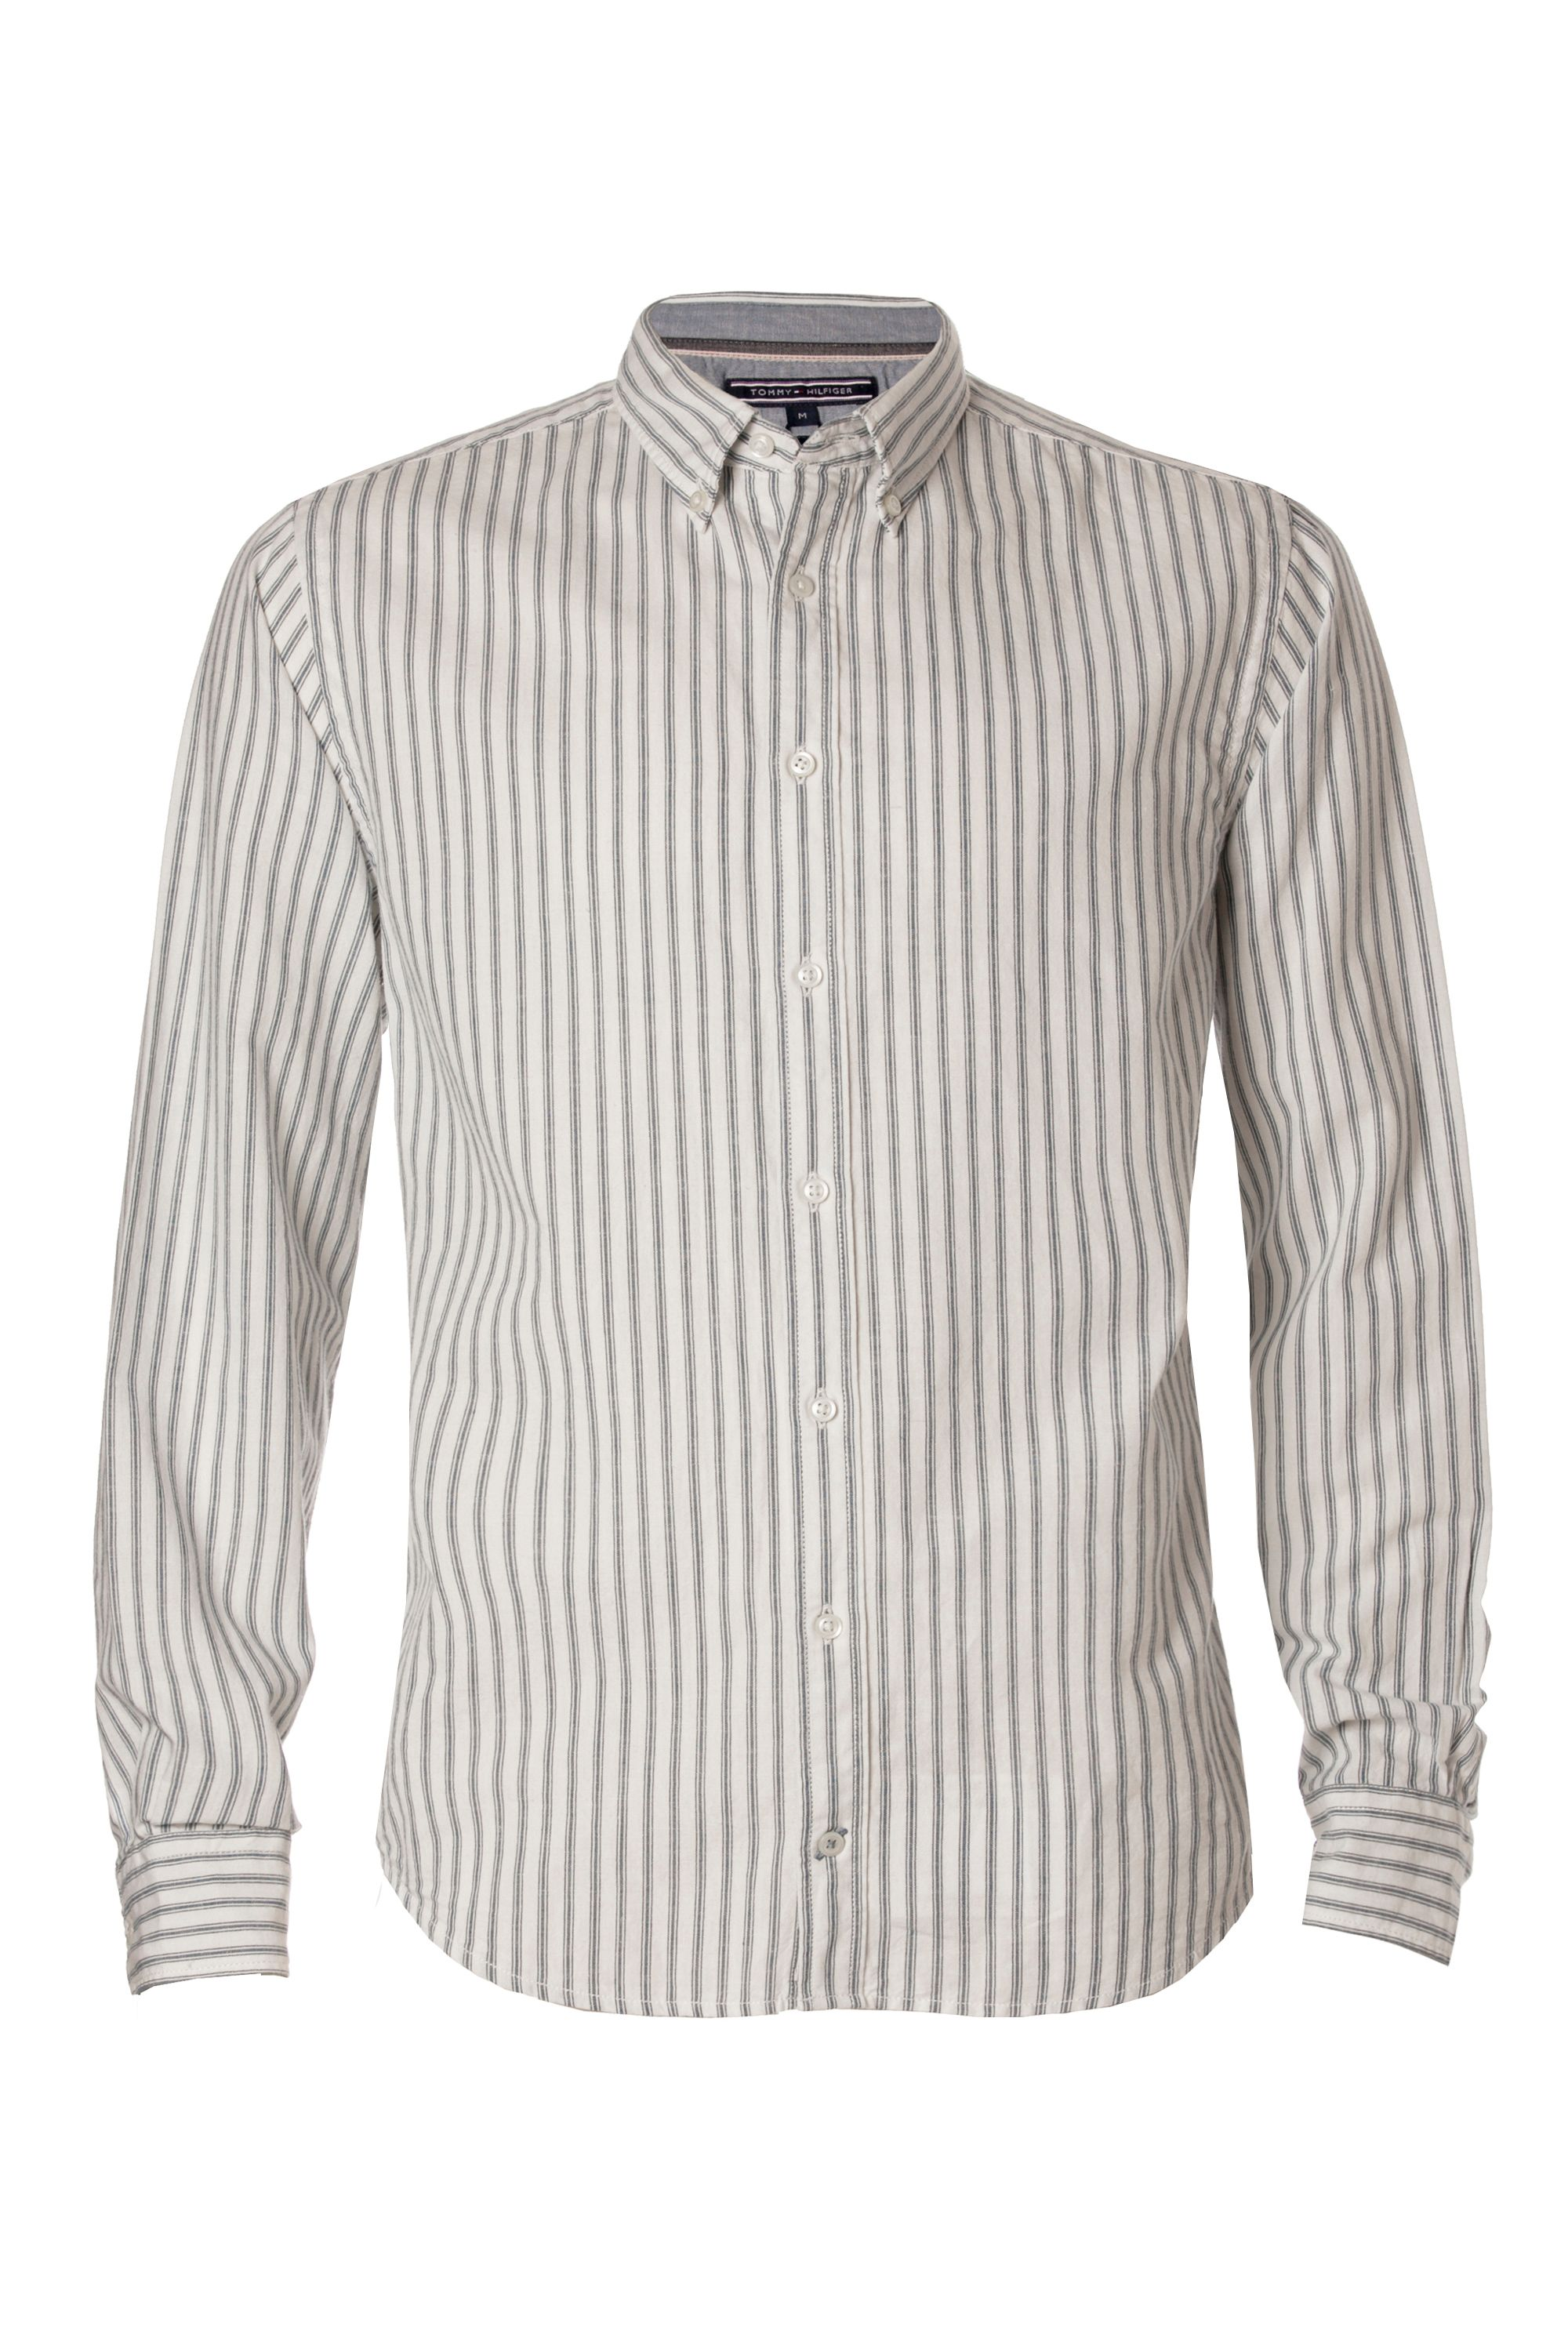 Adel stripe shirt